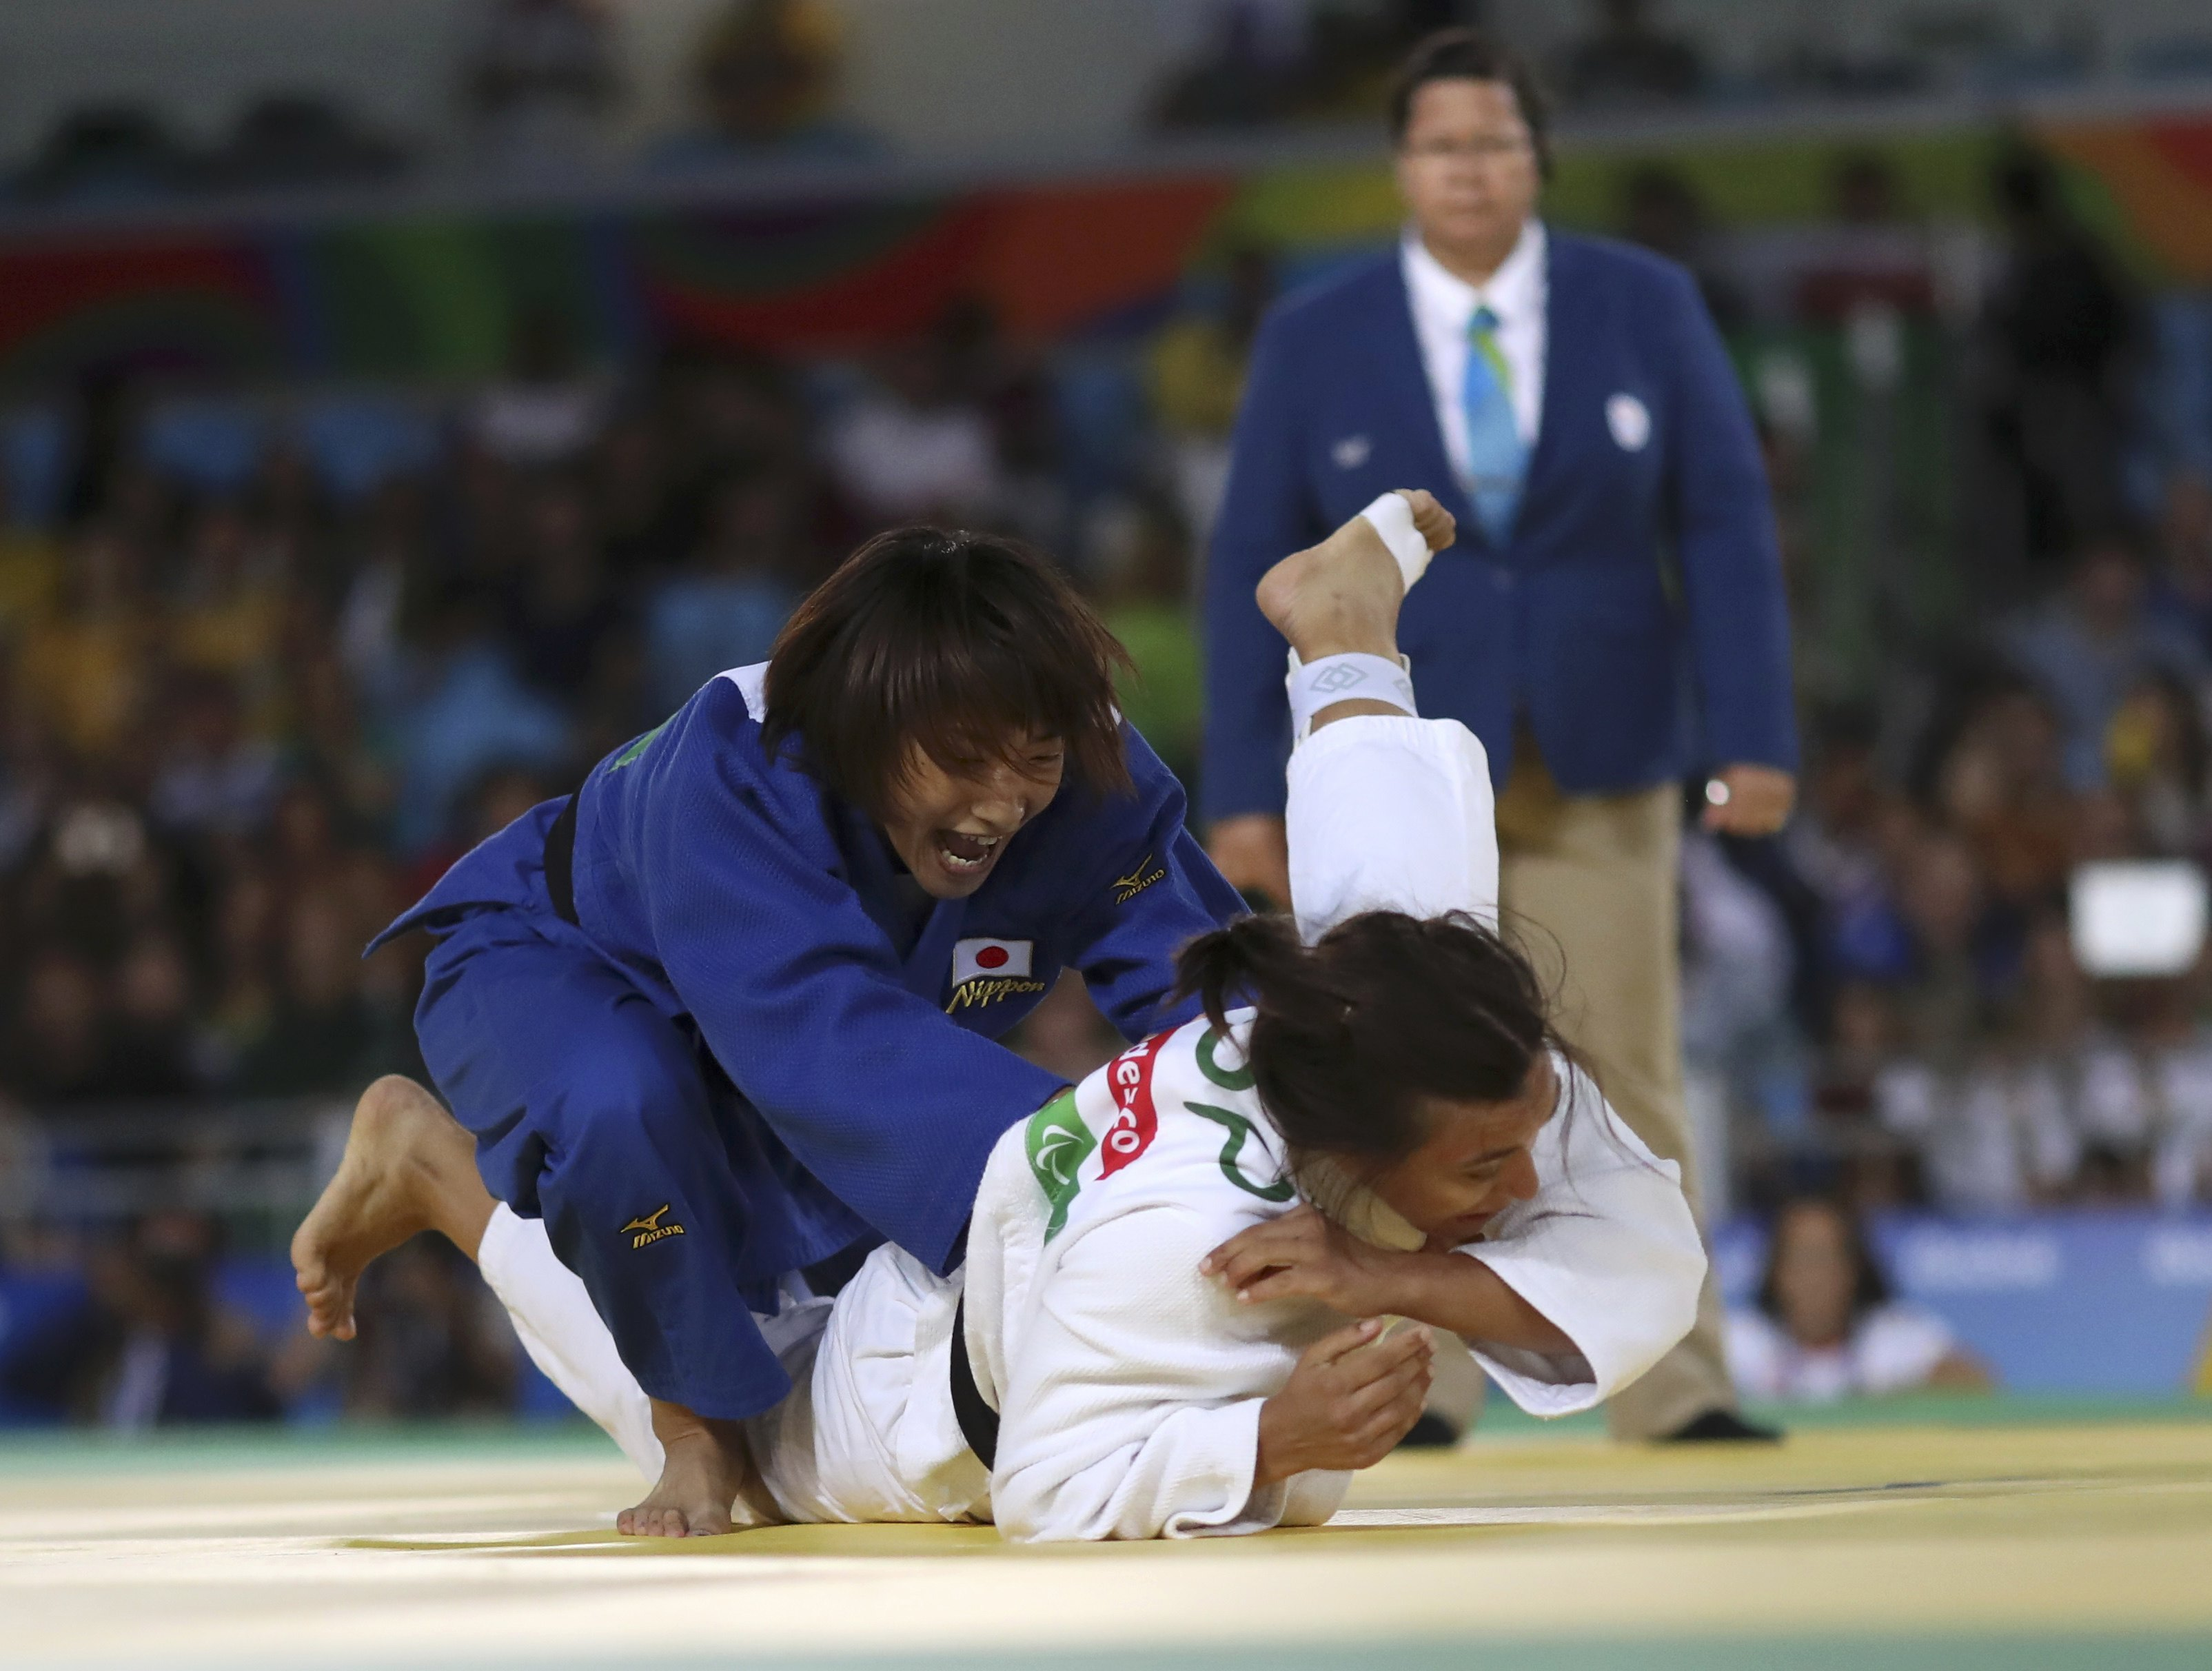 Junko Hirose (left) competes against Spain's Maria Merenciano Herrero during their bronze medal match at the Paralympics on Friday. | REUTERS